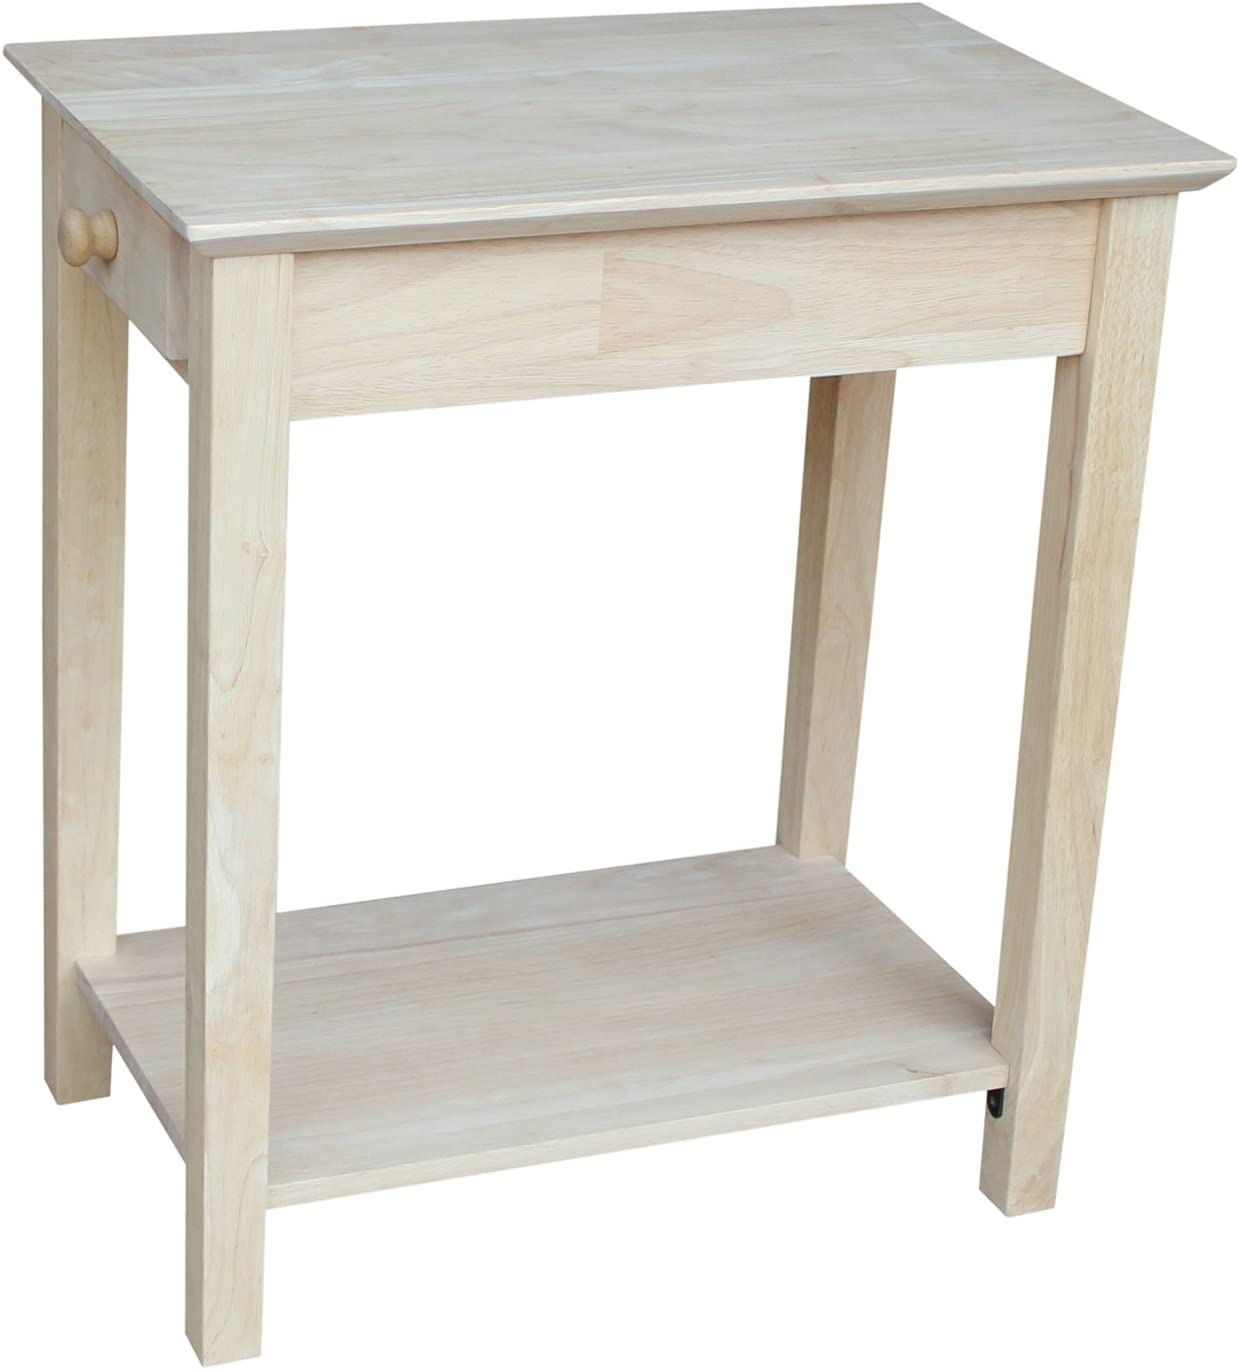 International Concepts OT-2214 Narrow End Table, Unfinished